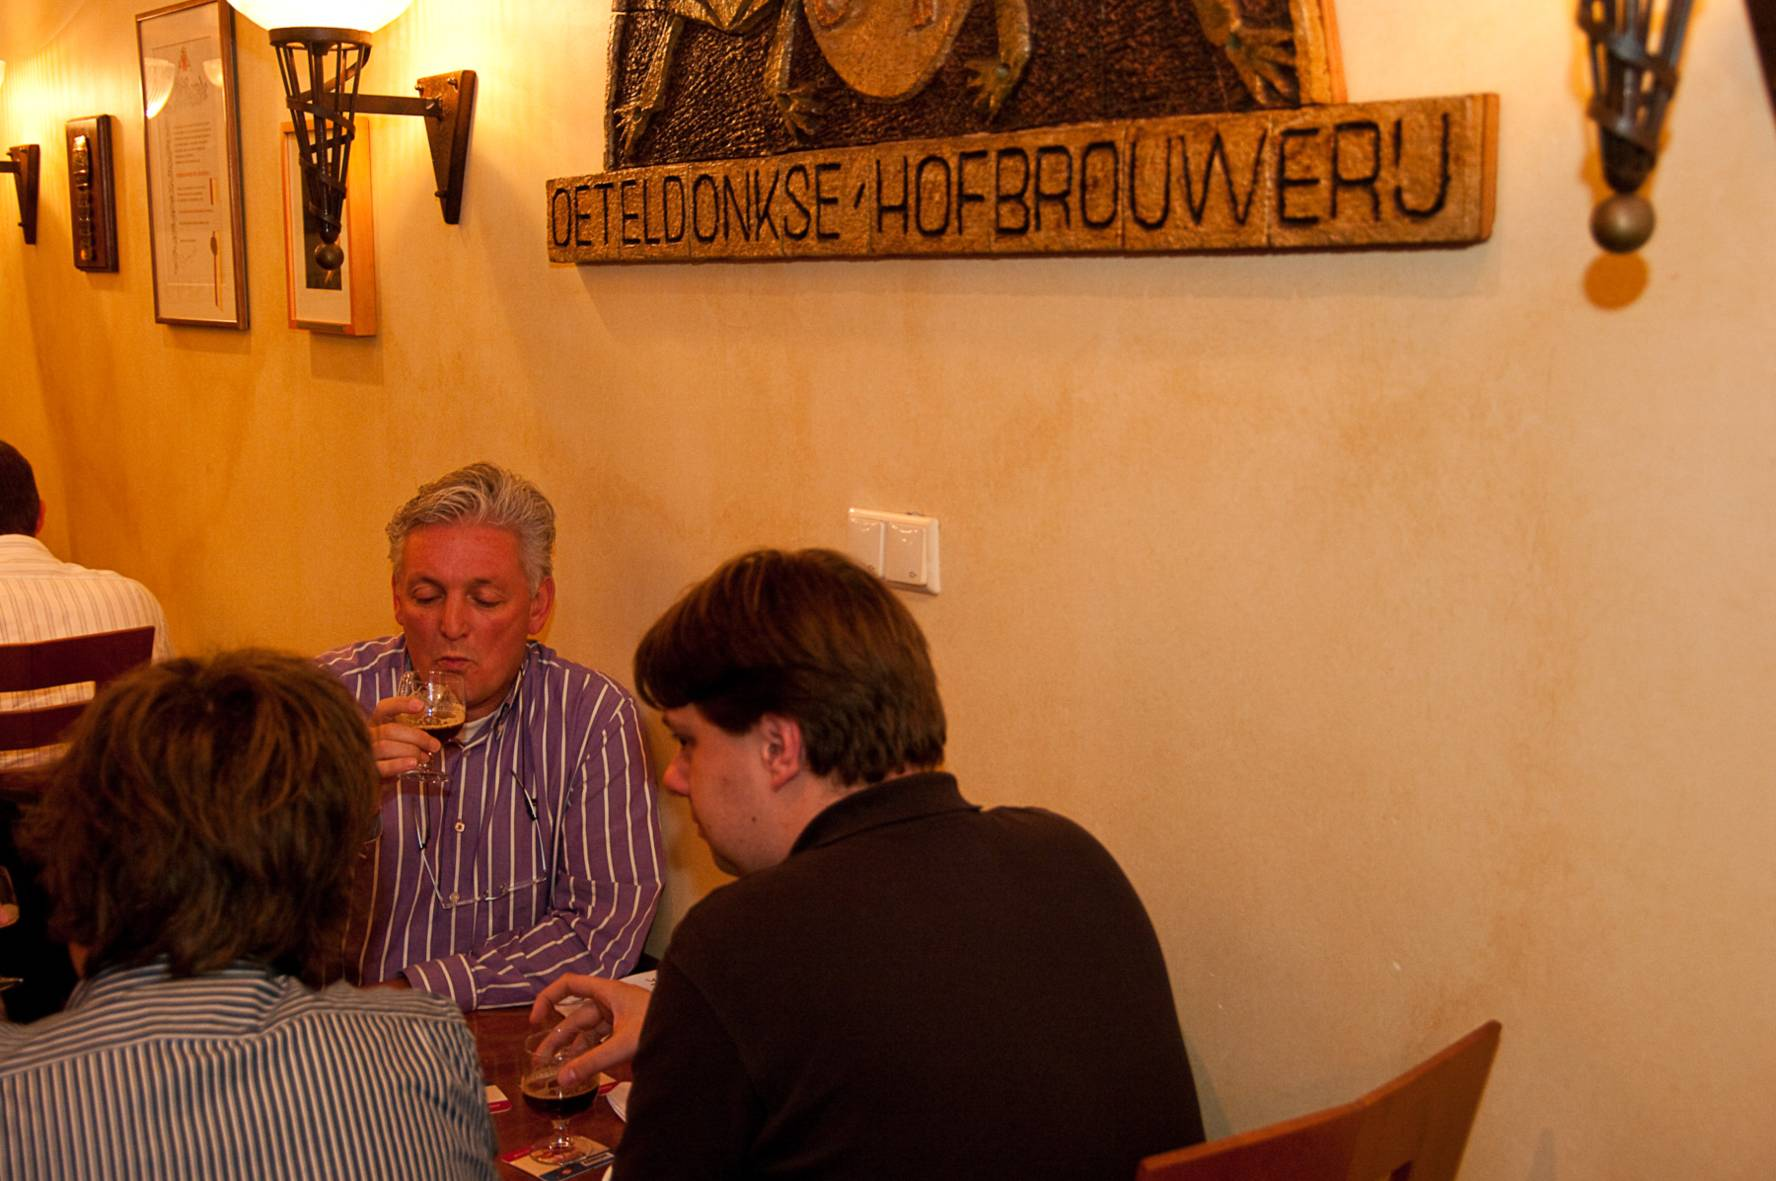 LekkersteBockBier2010 (102 of 172)